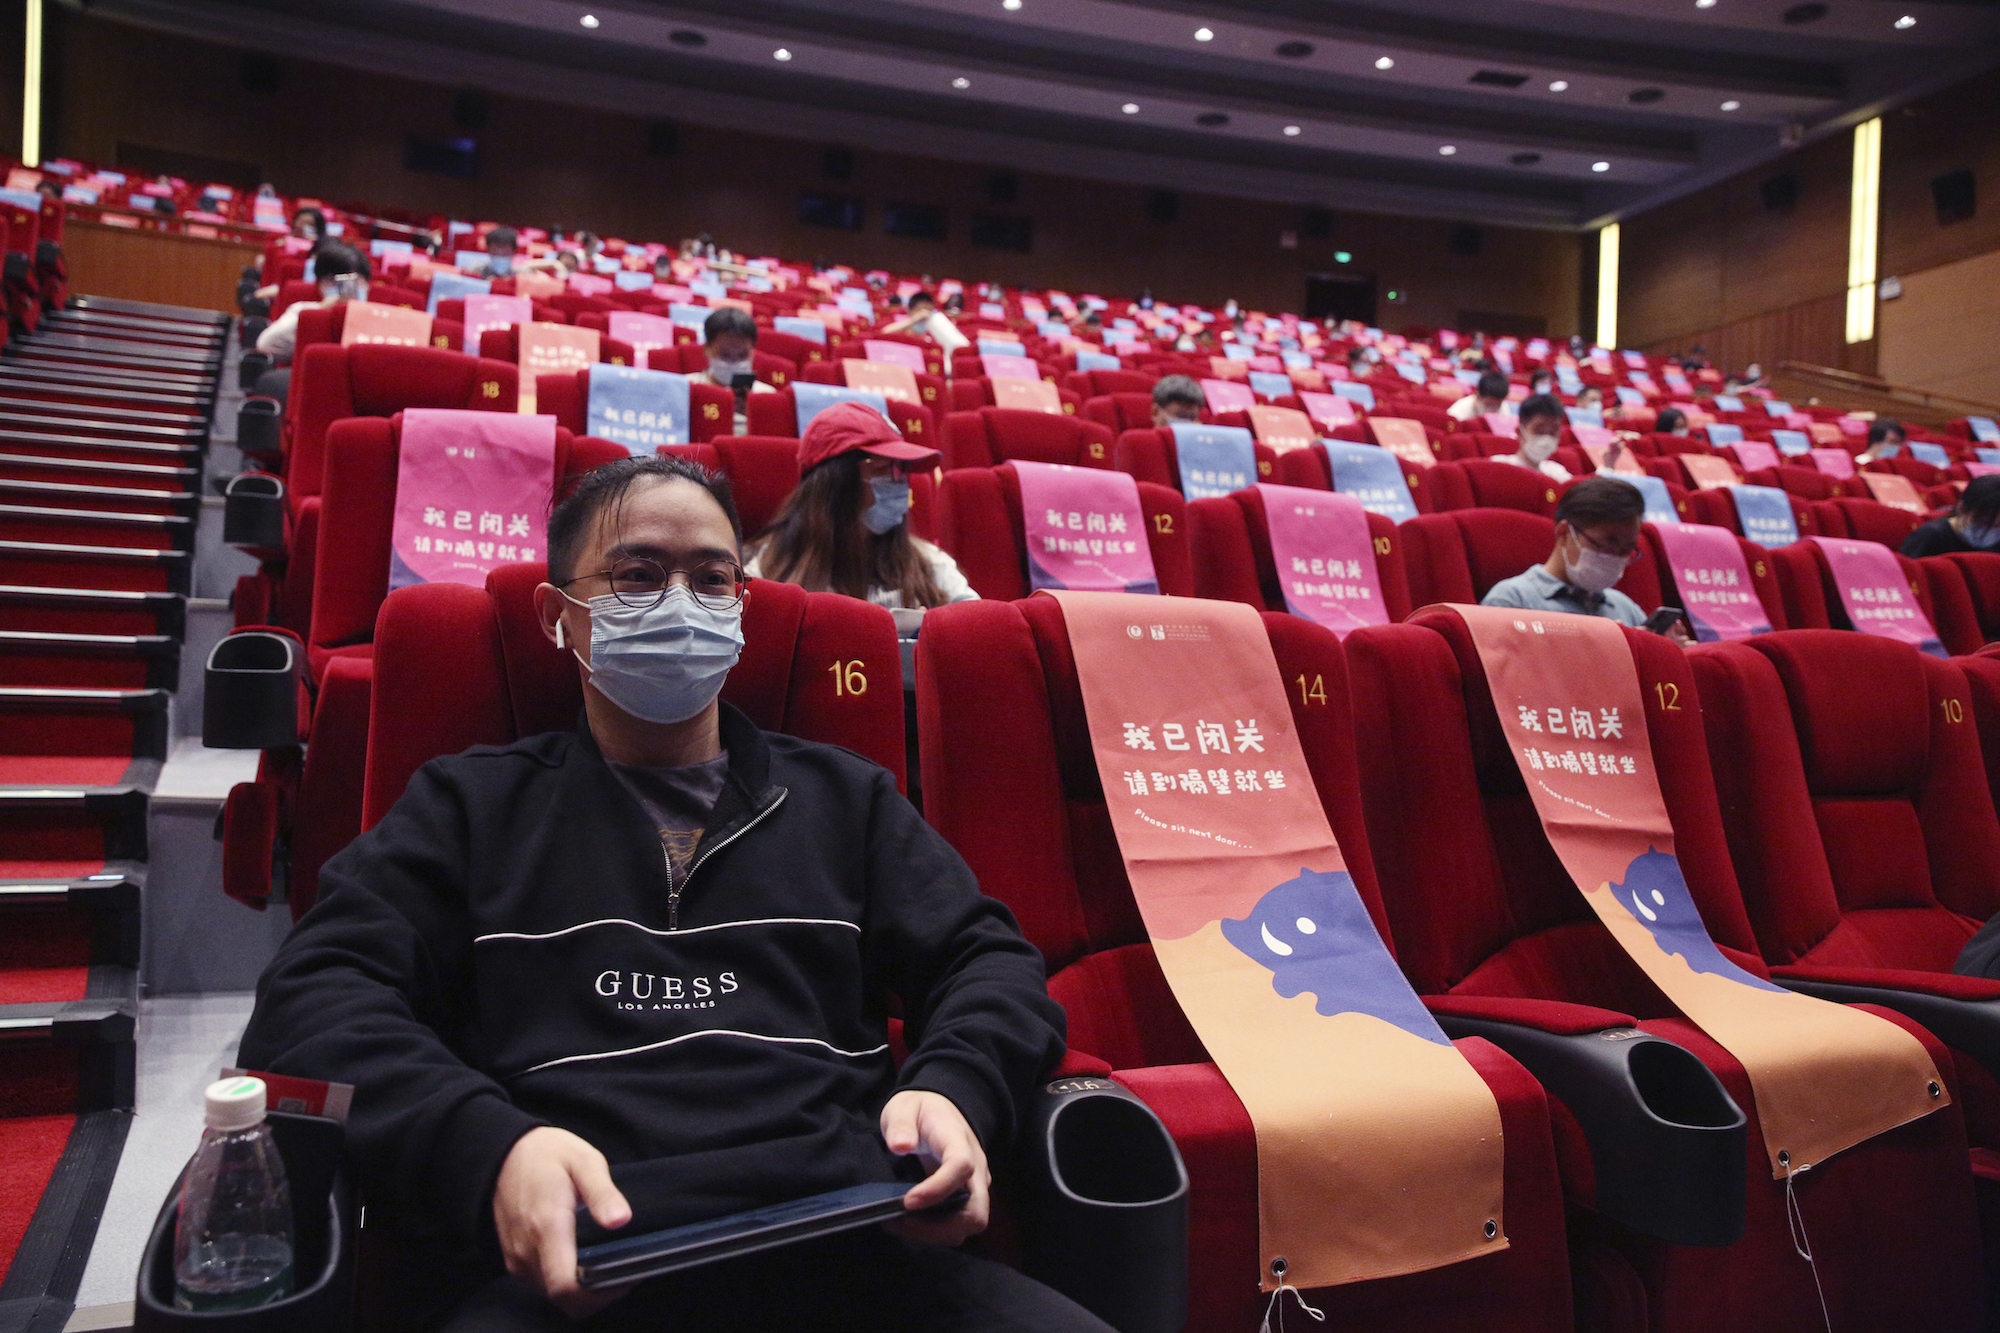 A movie theater restarts in Beijing, China on July 24, 2020, amid continuing worries over the new coronavirus COVID-19. The number of seats is restricted with 30% of the normal number to keep the social distance. ( The Yomiuri Shimbun via AP Images )